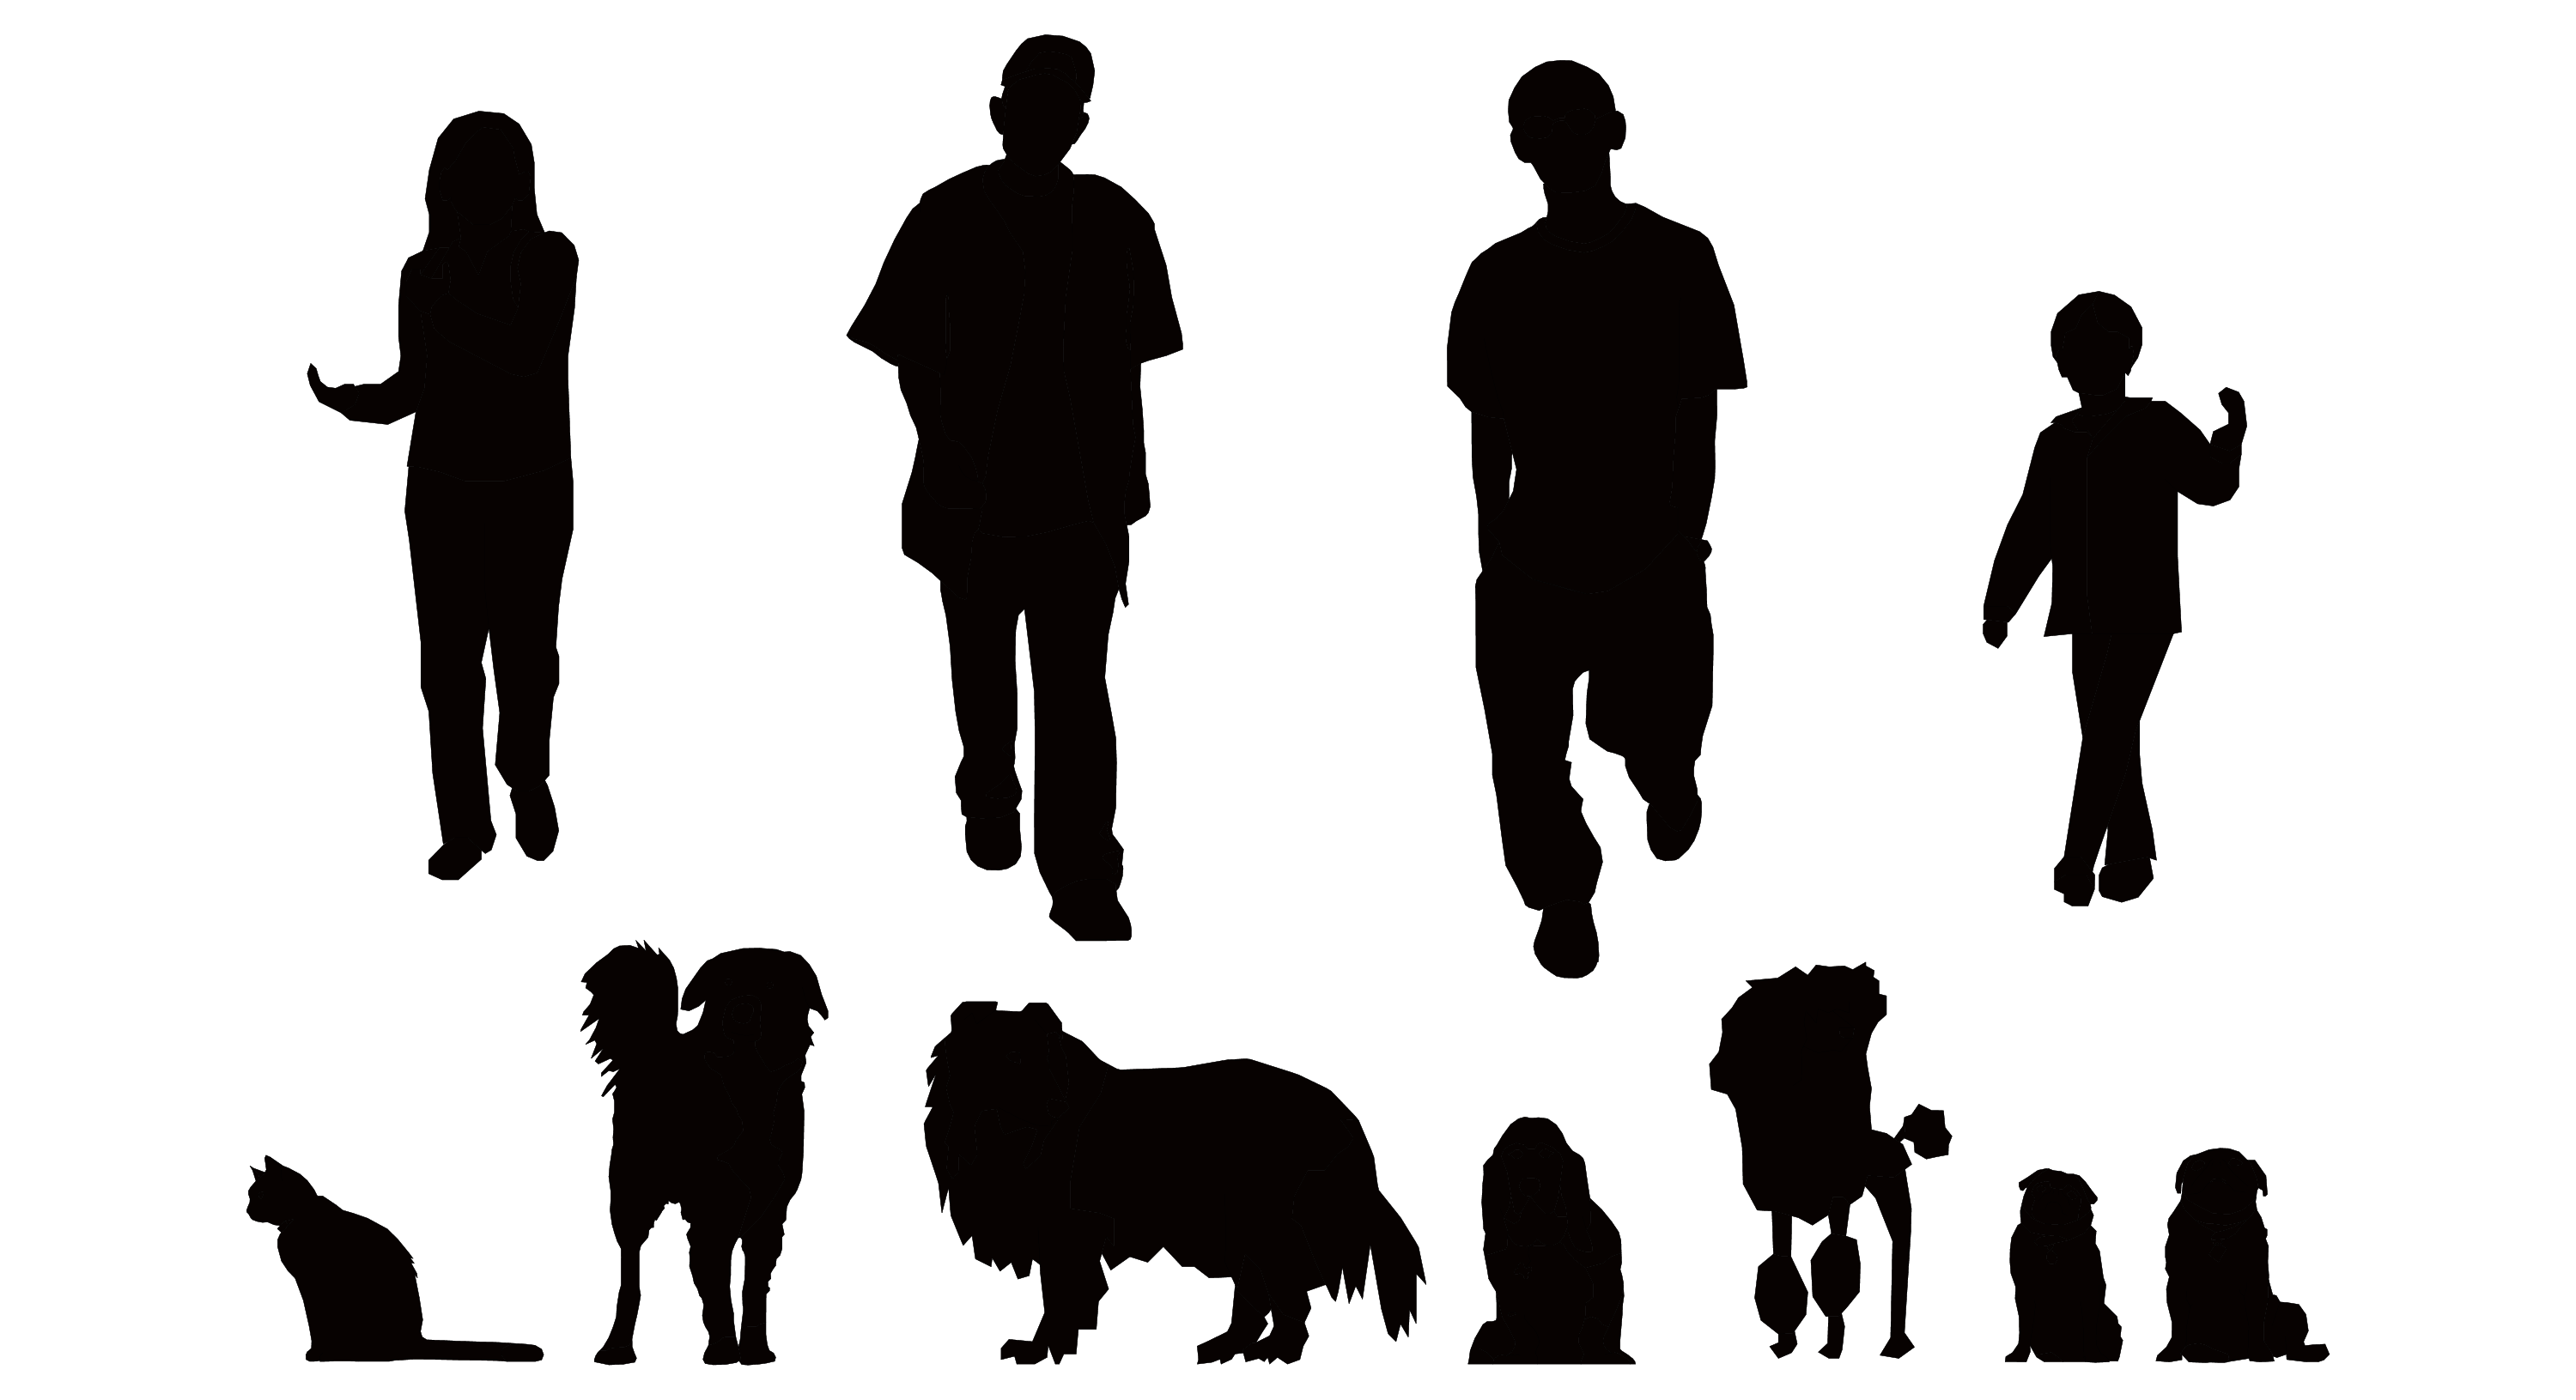 Traveling People Silhouettes Vector Art Graphics: People Vector